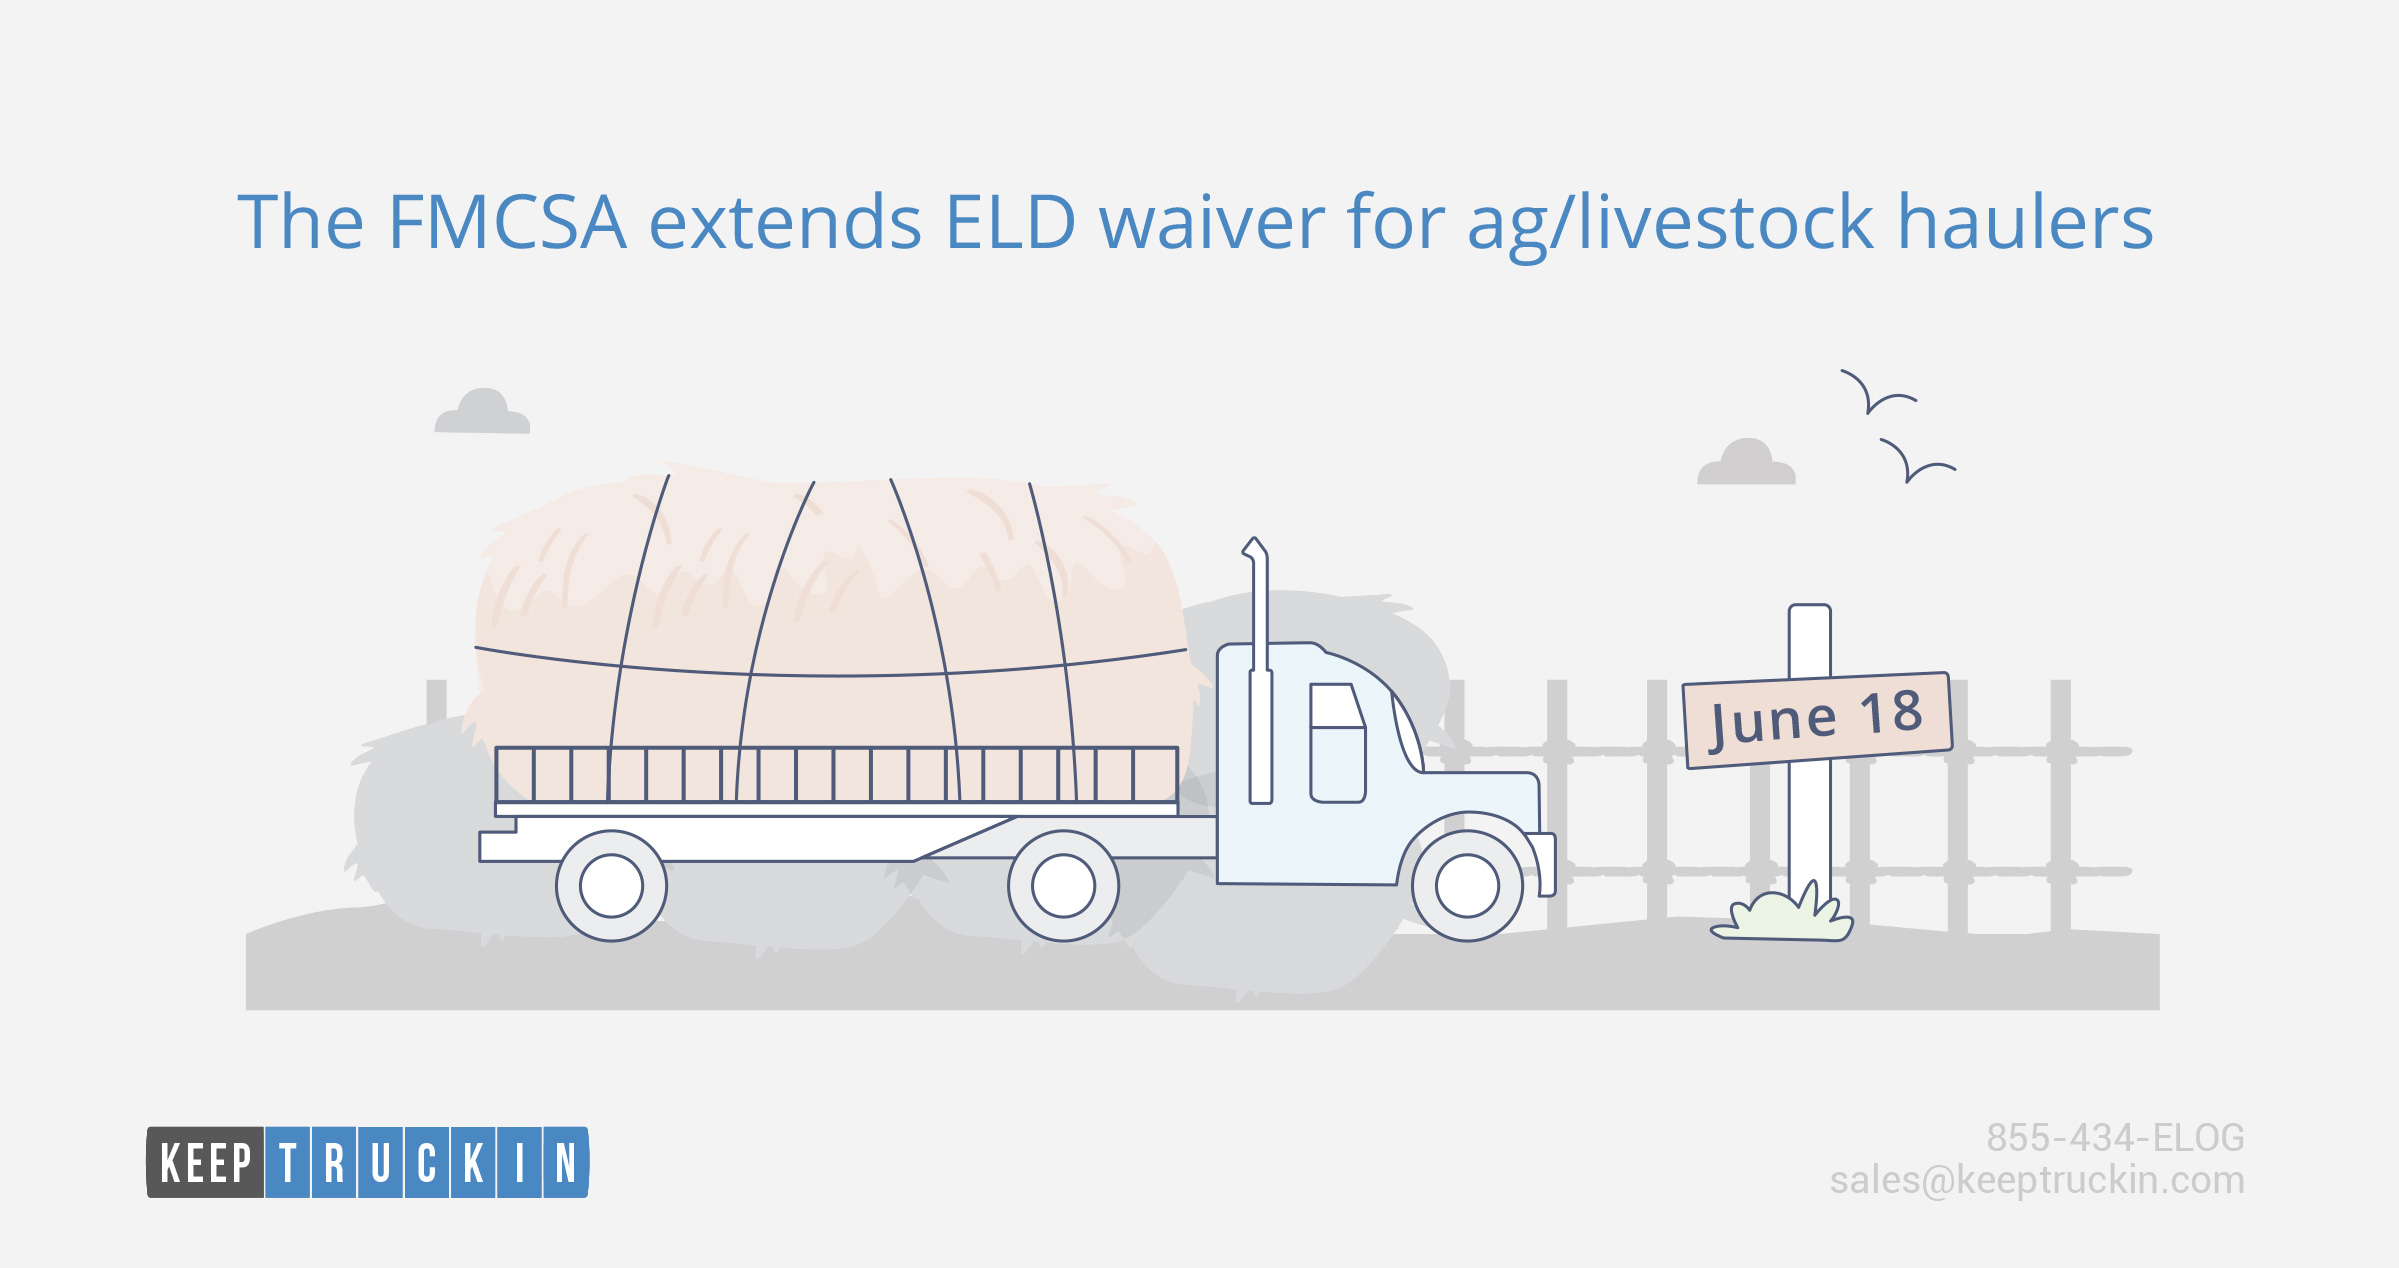 The FMCSA extends the ELD waiver for ag/livestock haulers